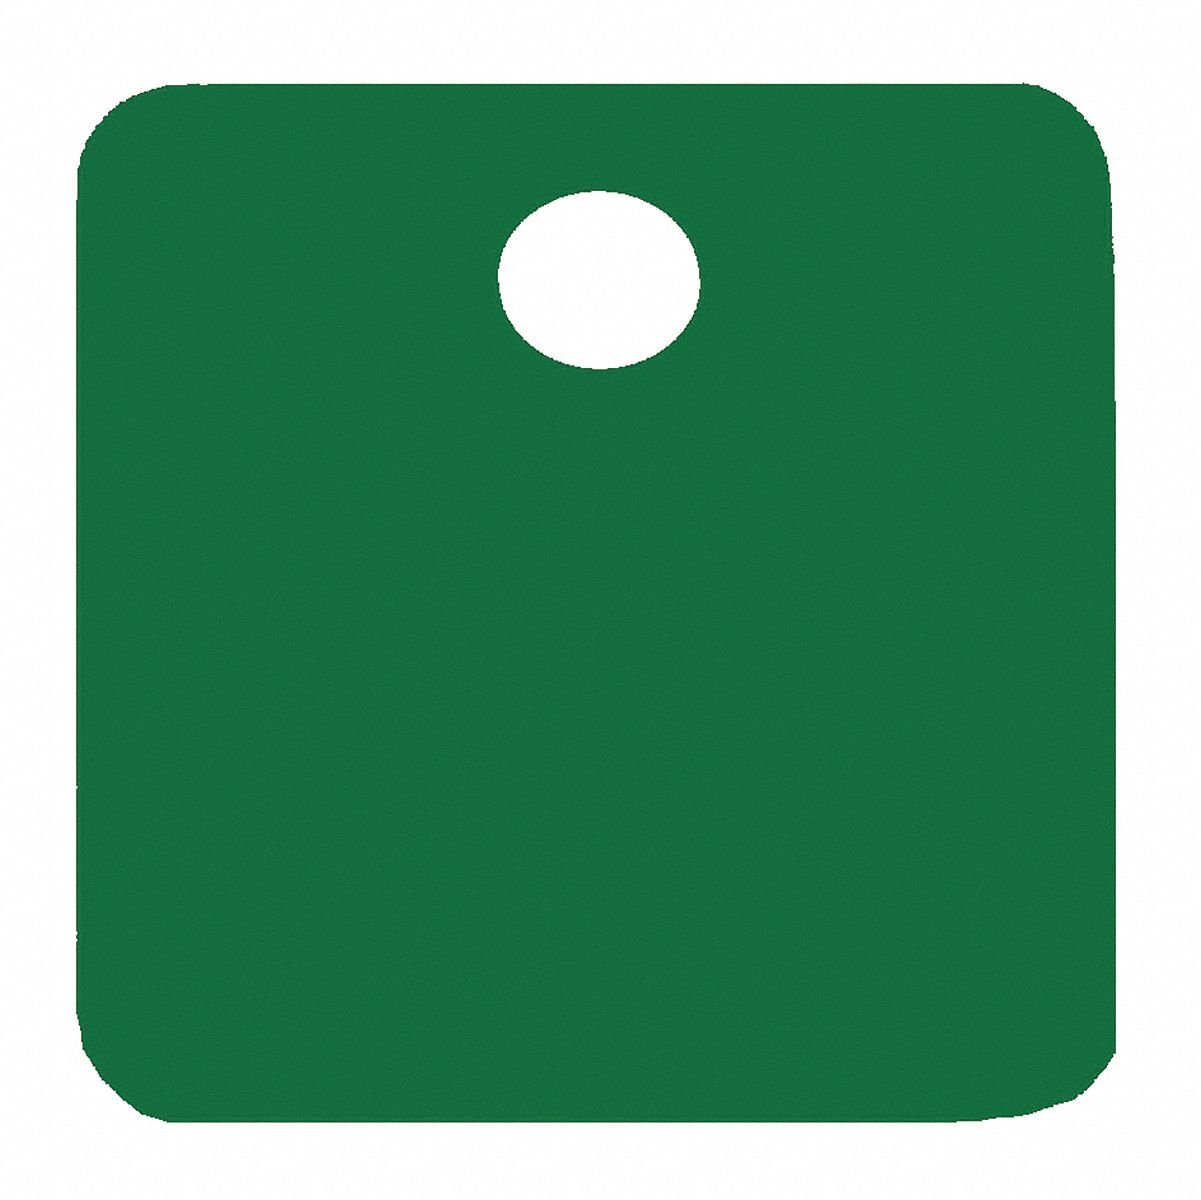 Green Blank Tag, Aluminum, Square, 1-1/4'' Height, 5 PK